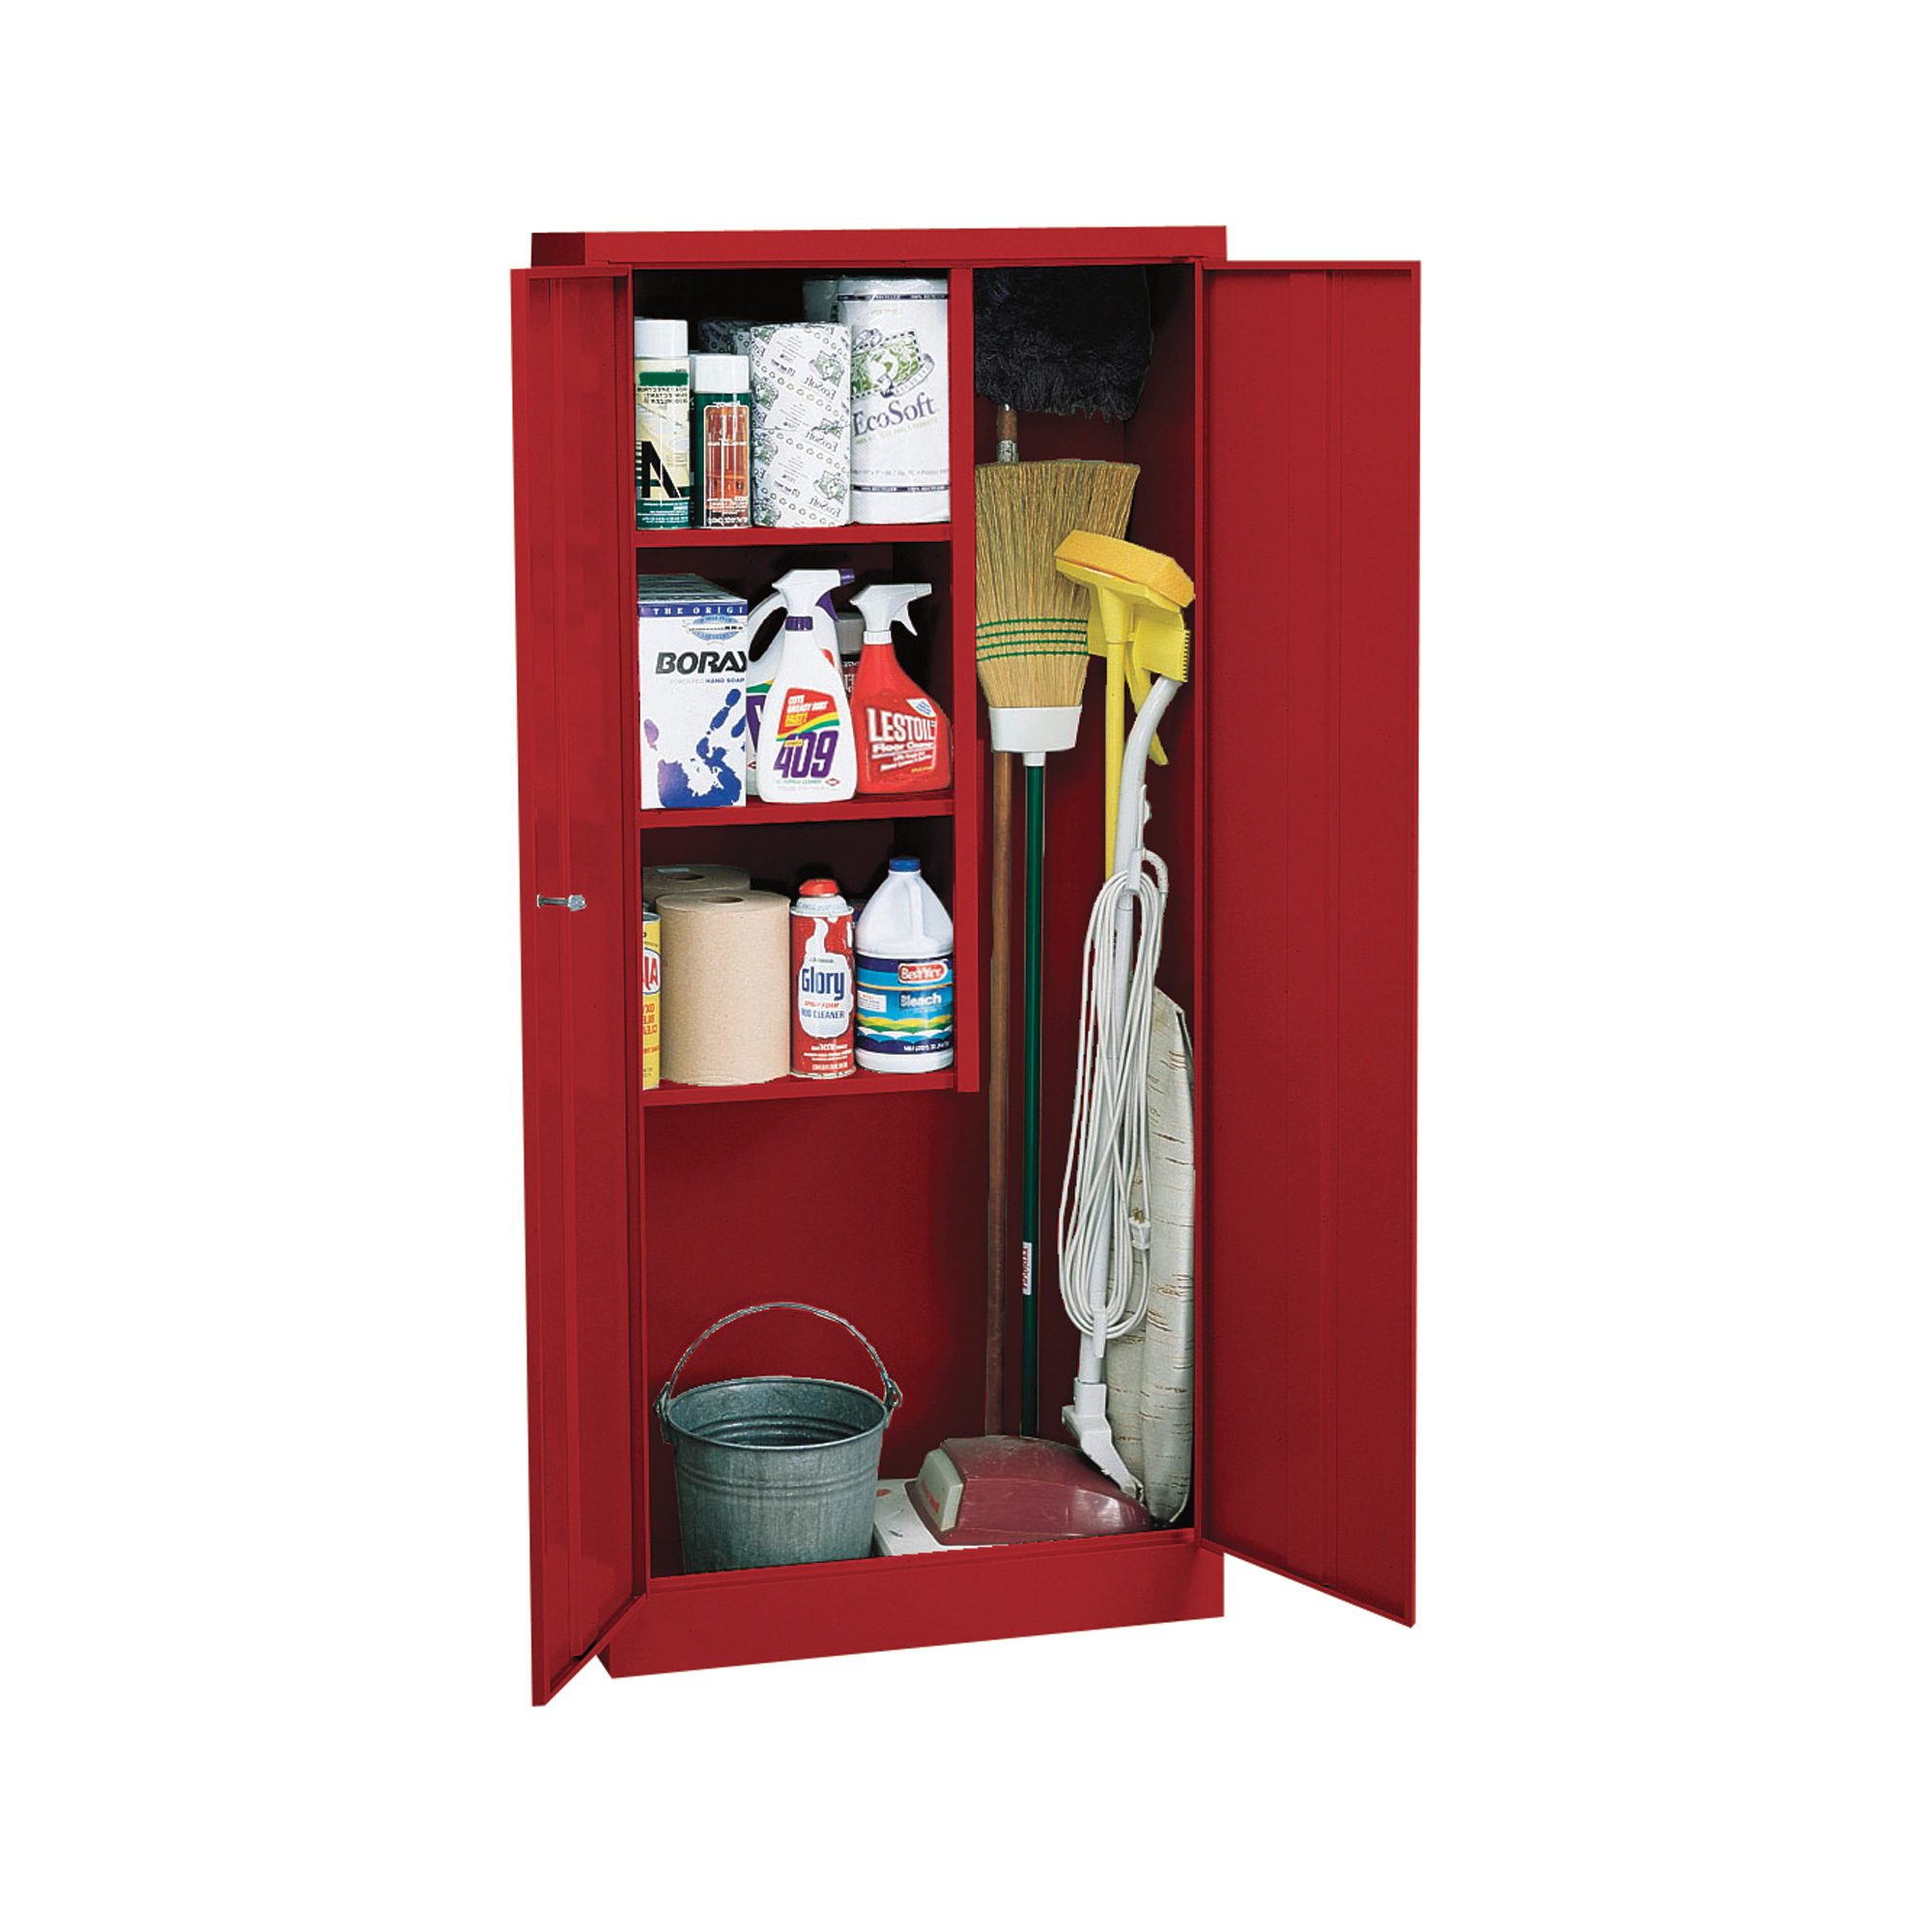 cabinet pin industrial cabinets divulgamaisweb com janitorial storage with bins